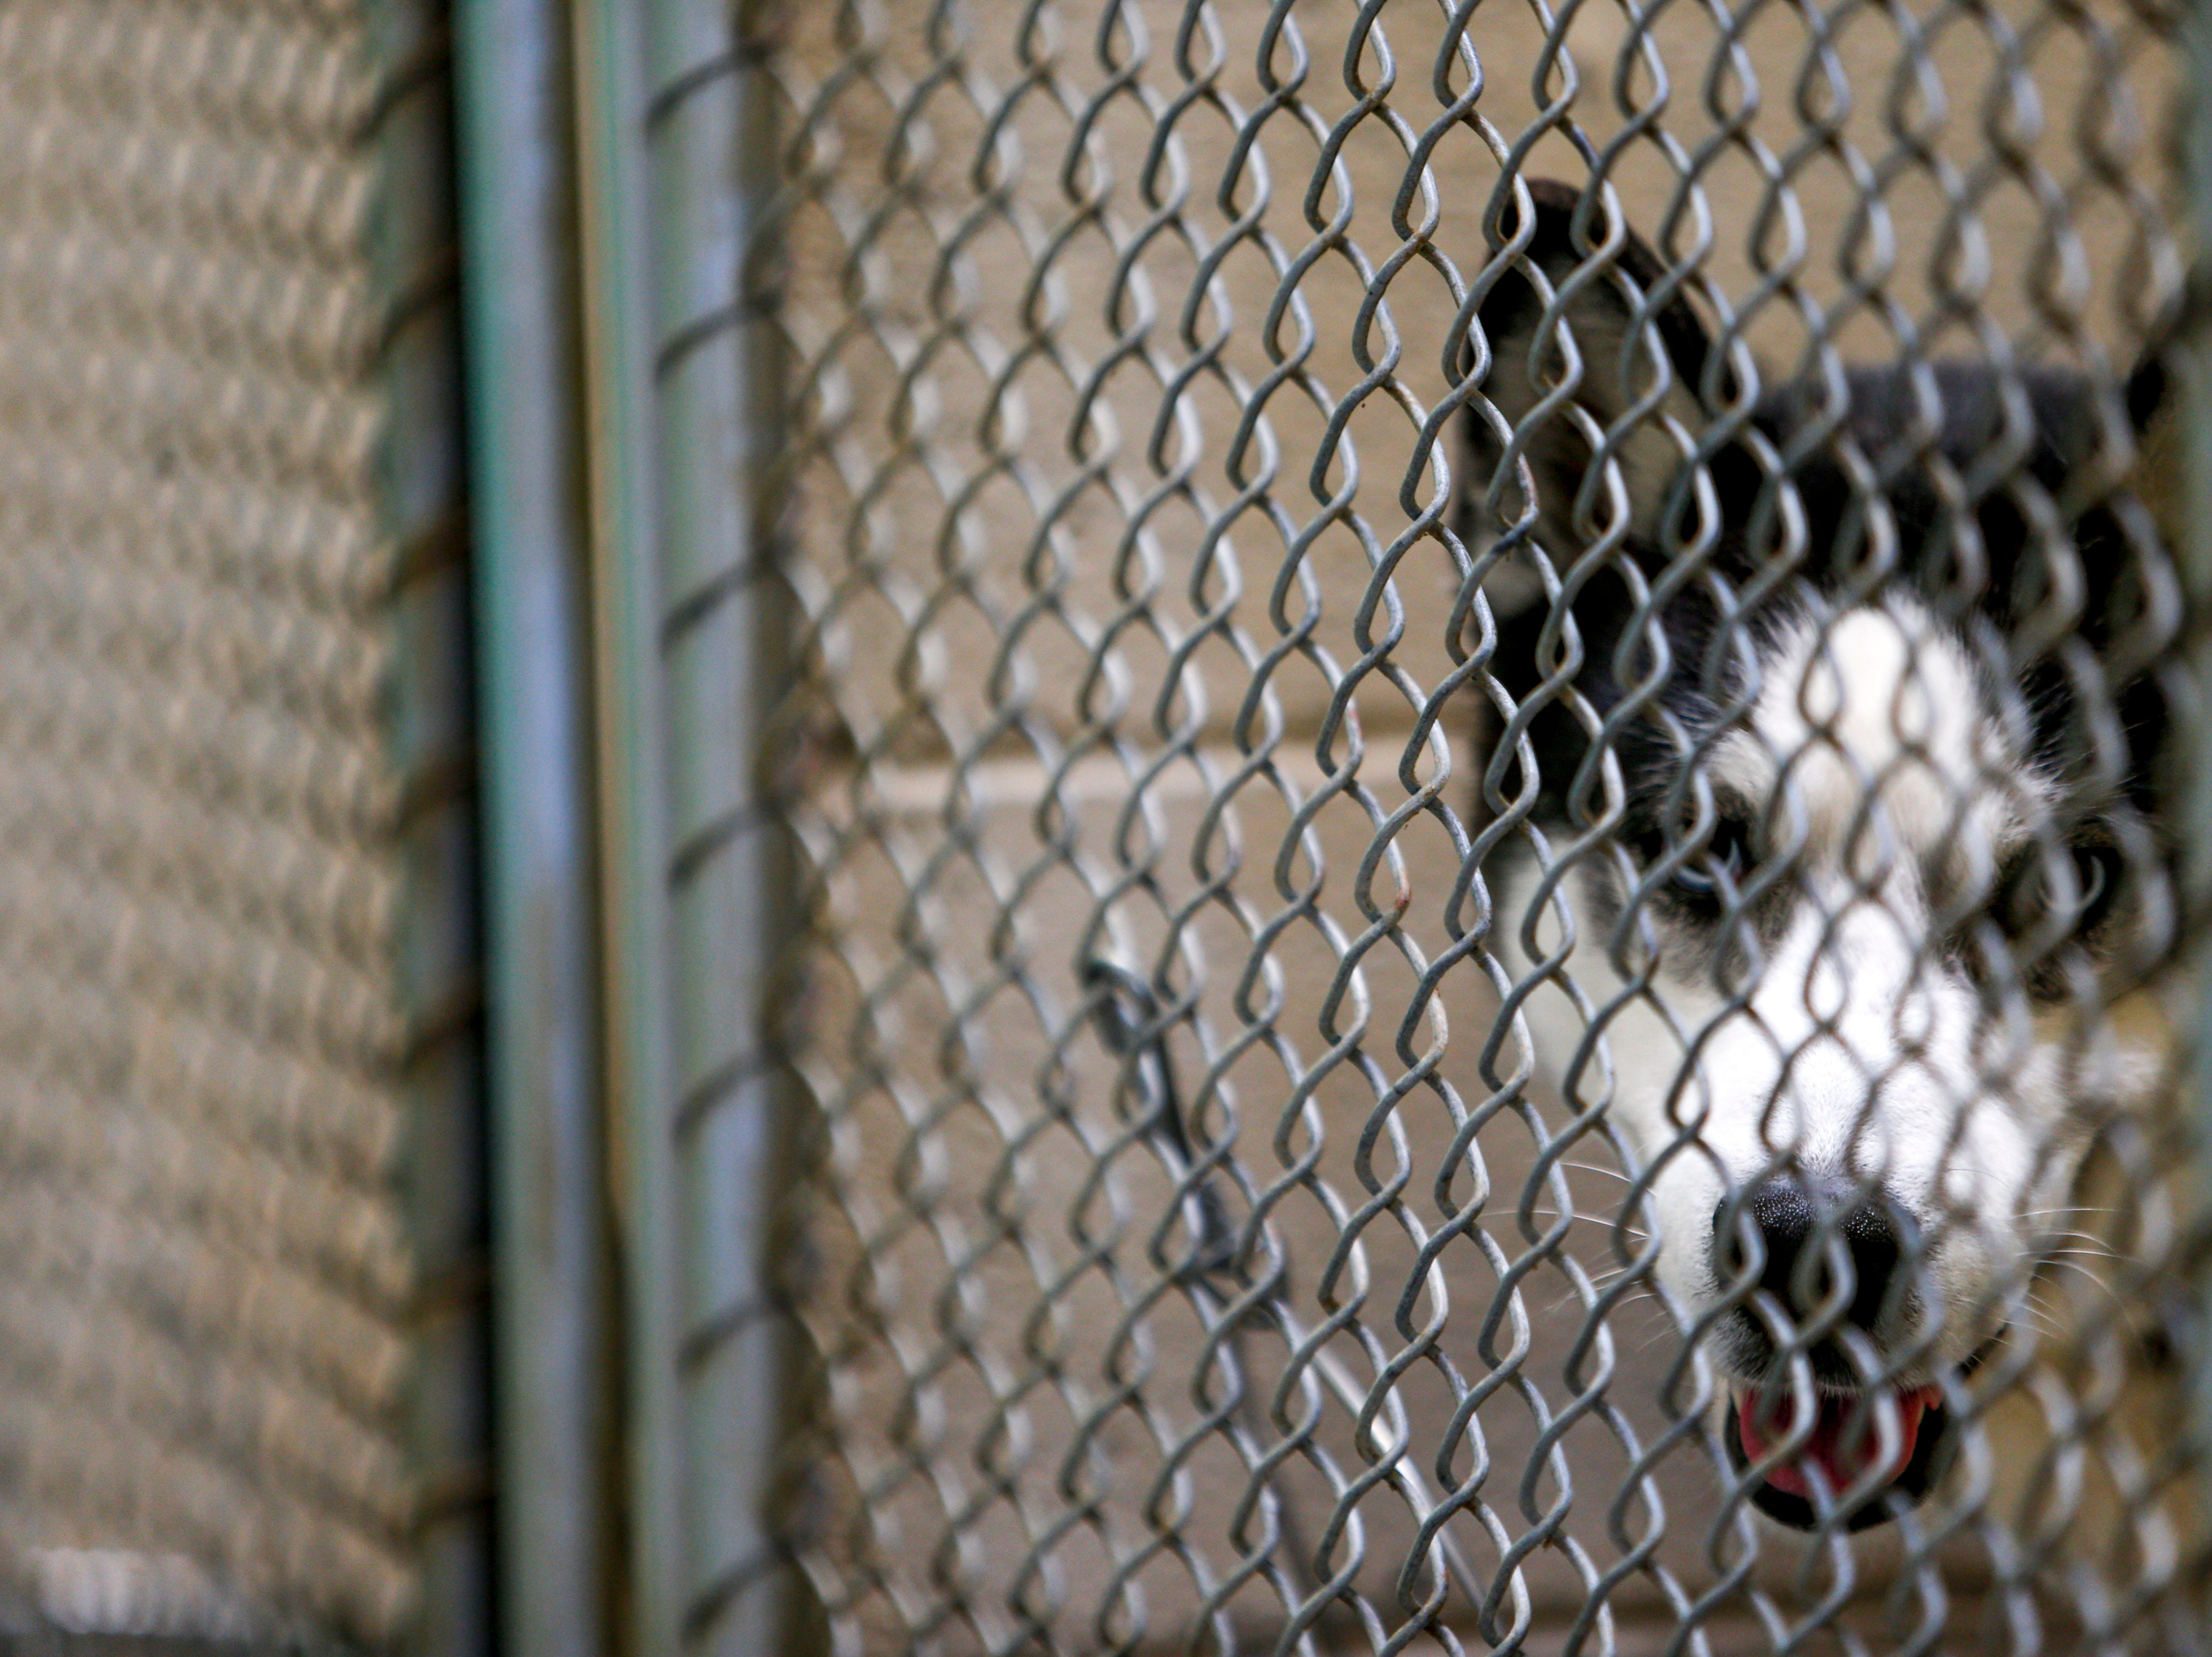 Thor, a husky, looks out of his kennel in hopes to find a new family at Montgomery County Animal Care and Control in Clarksville, Tenn., on Wednesday, March 13, 2019.